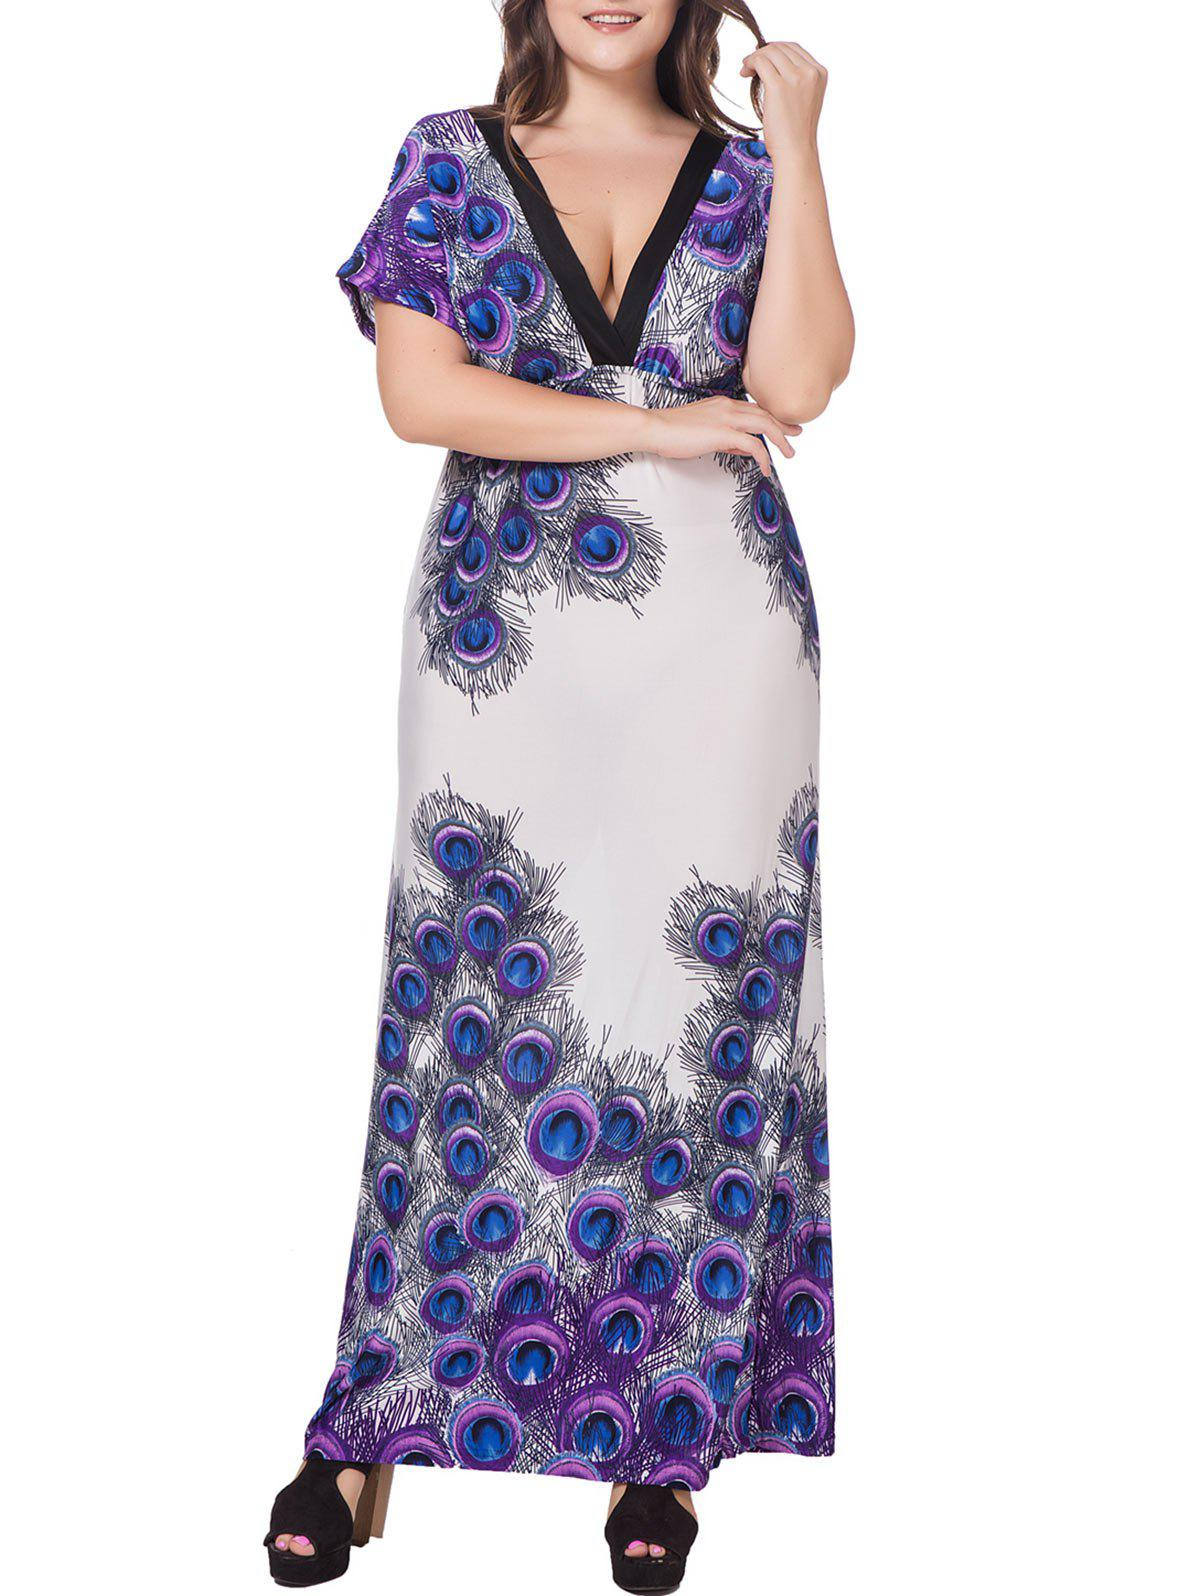 Feather Print Tie Empire Waist Plus Size Maxi Dress - PURPLE 3X